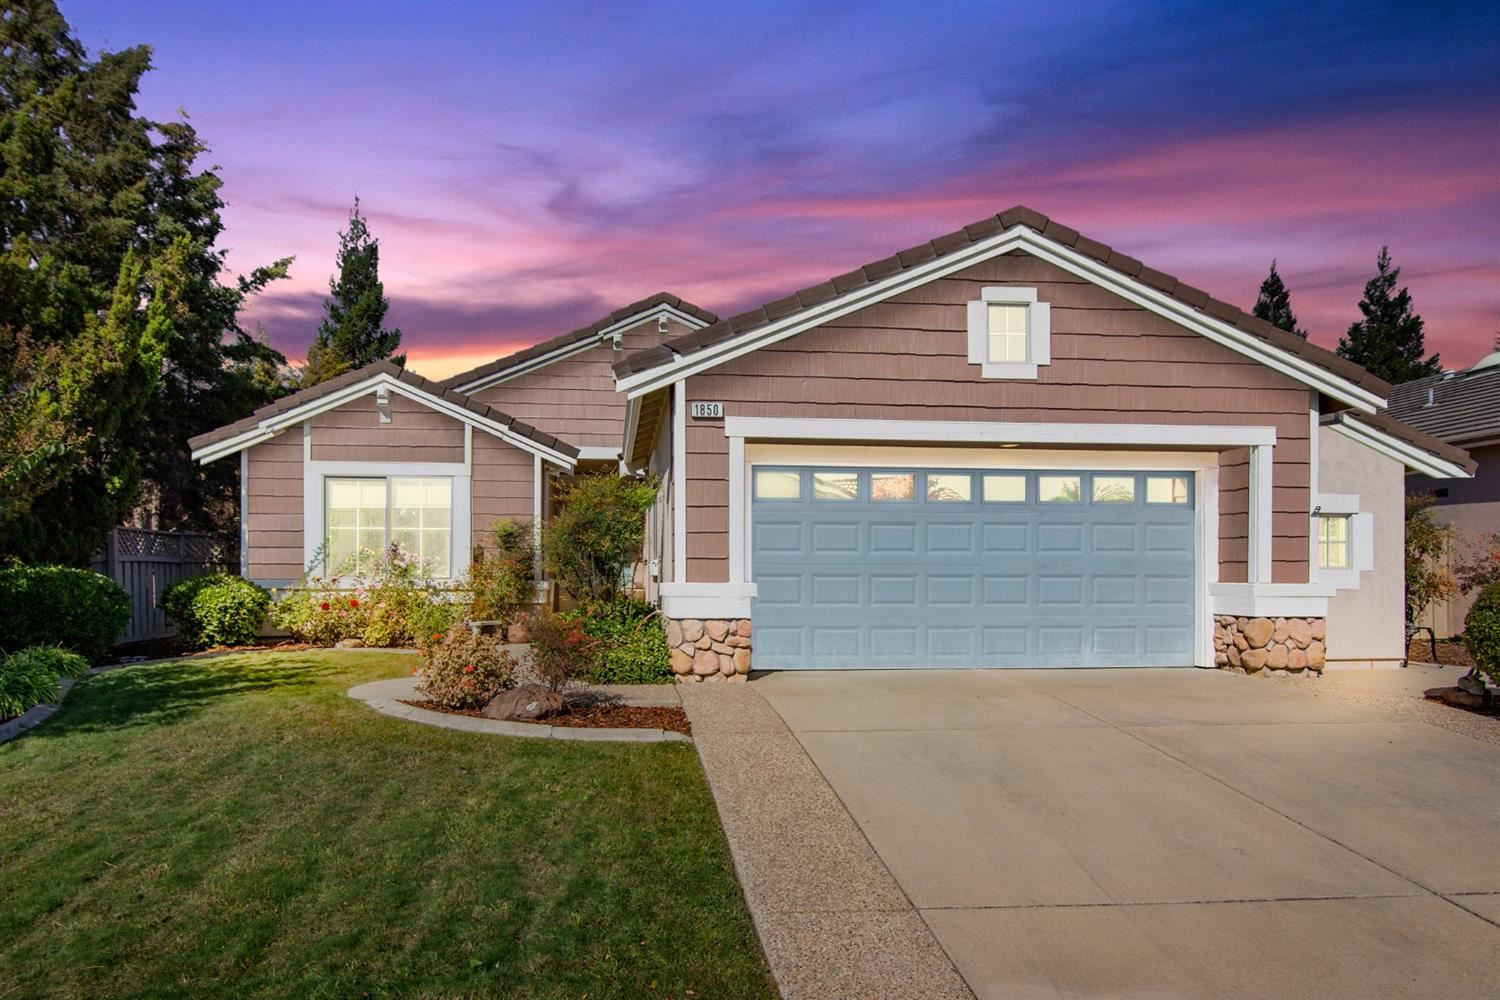 Photo of 1850 Beckwith Lane, Lincoln, CA 95648 (MLS # 221133307)